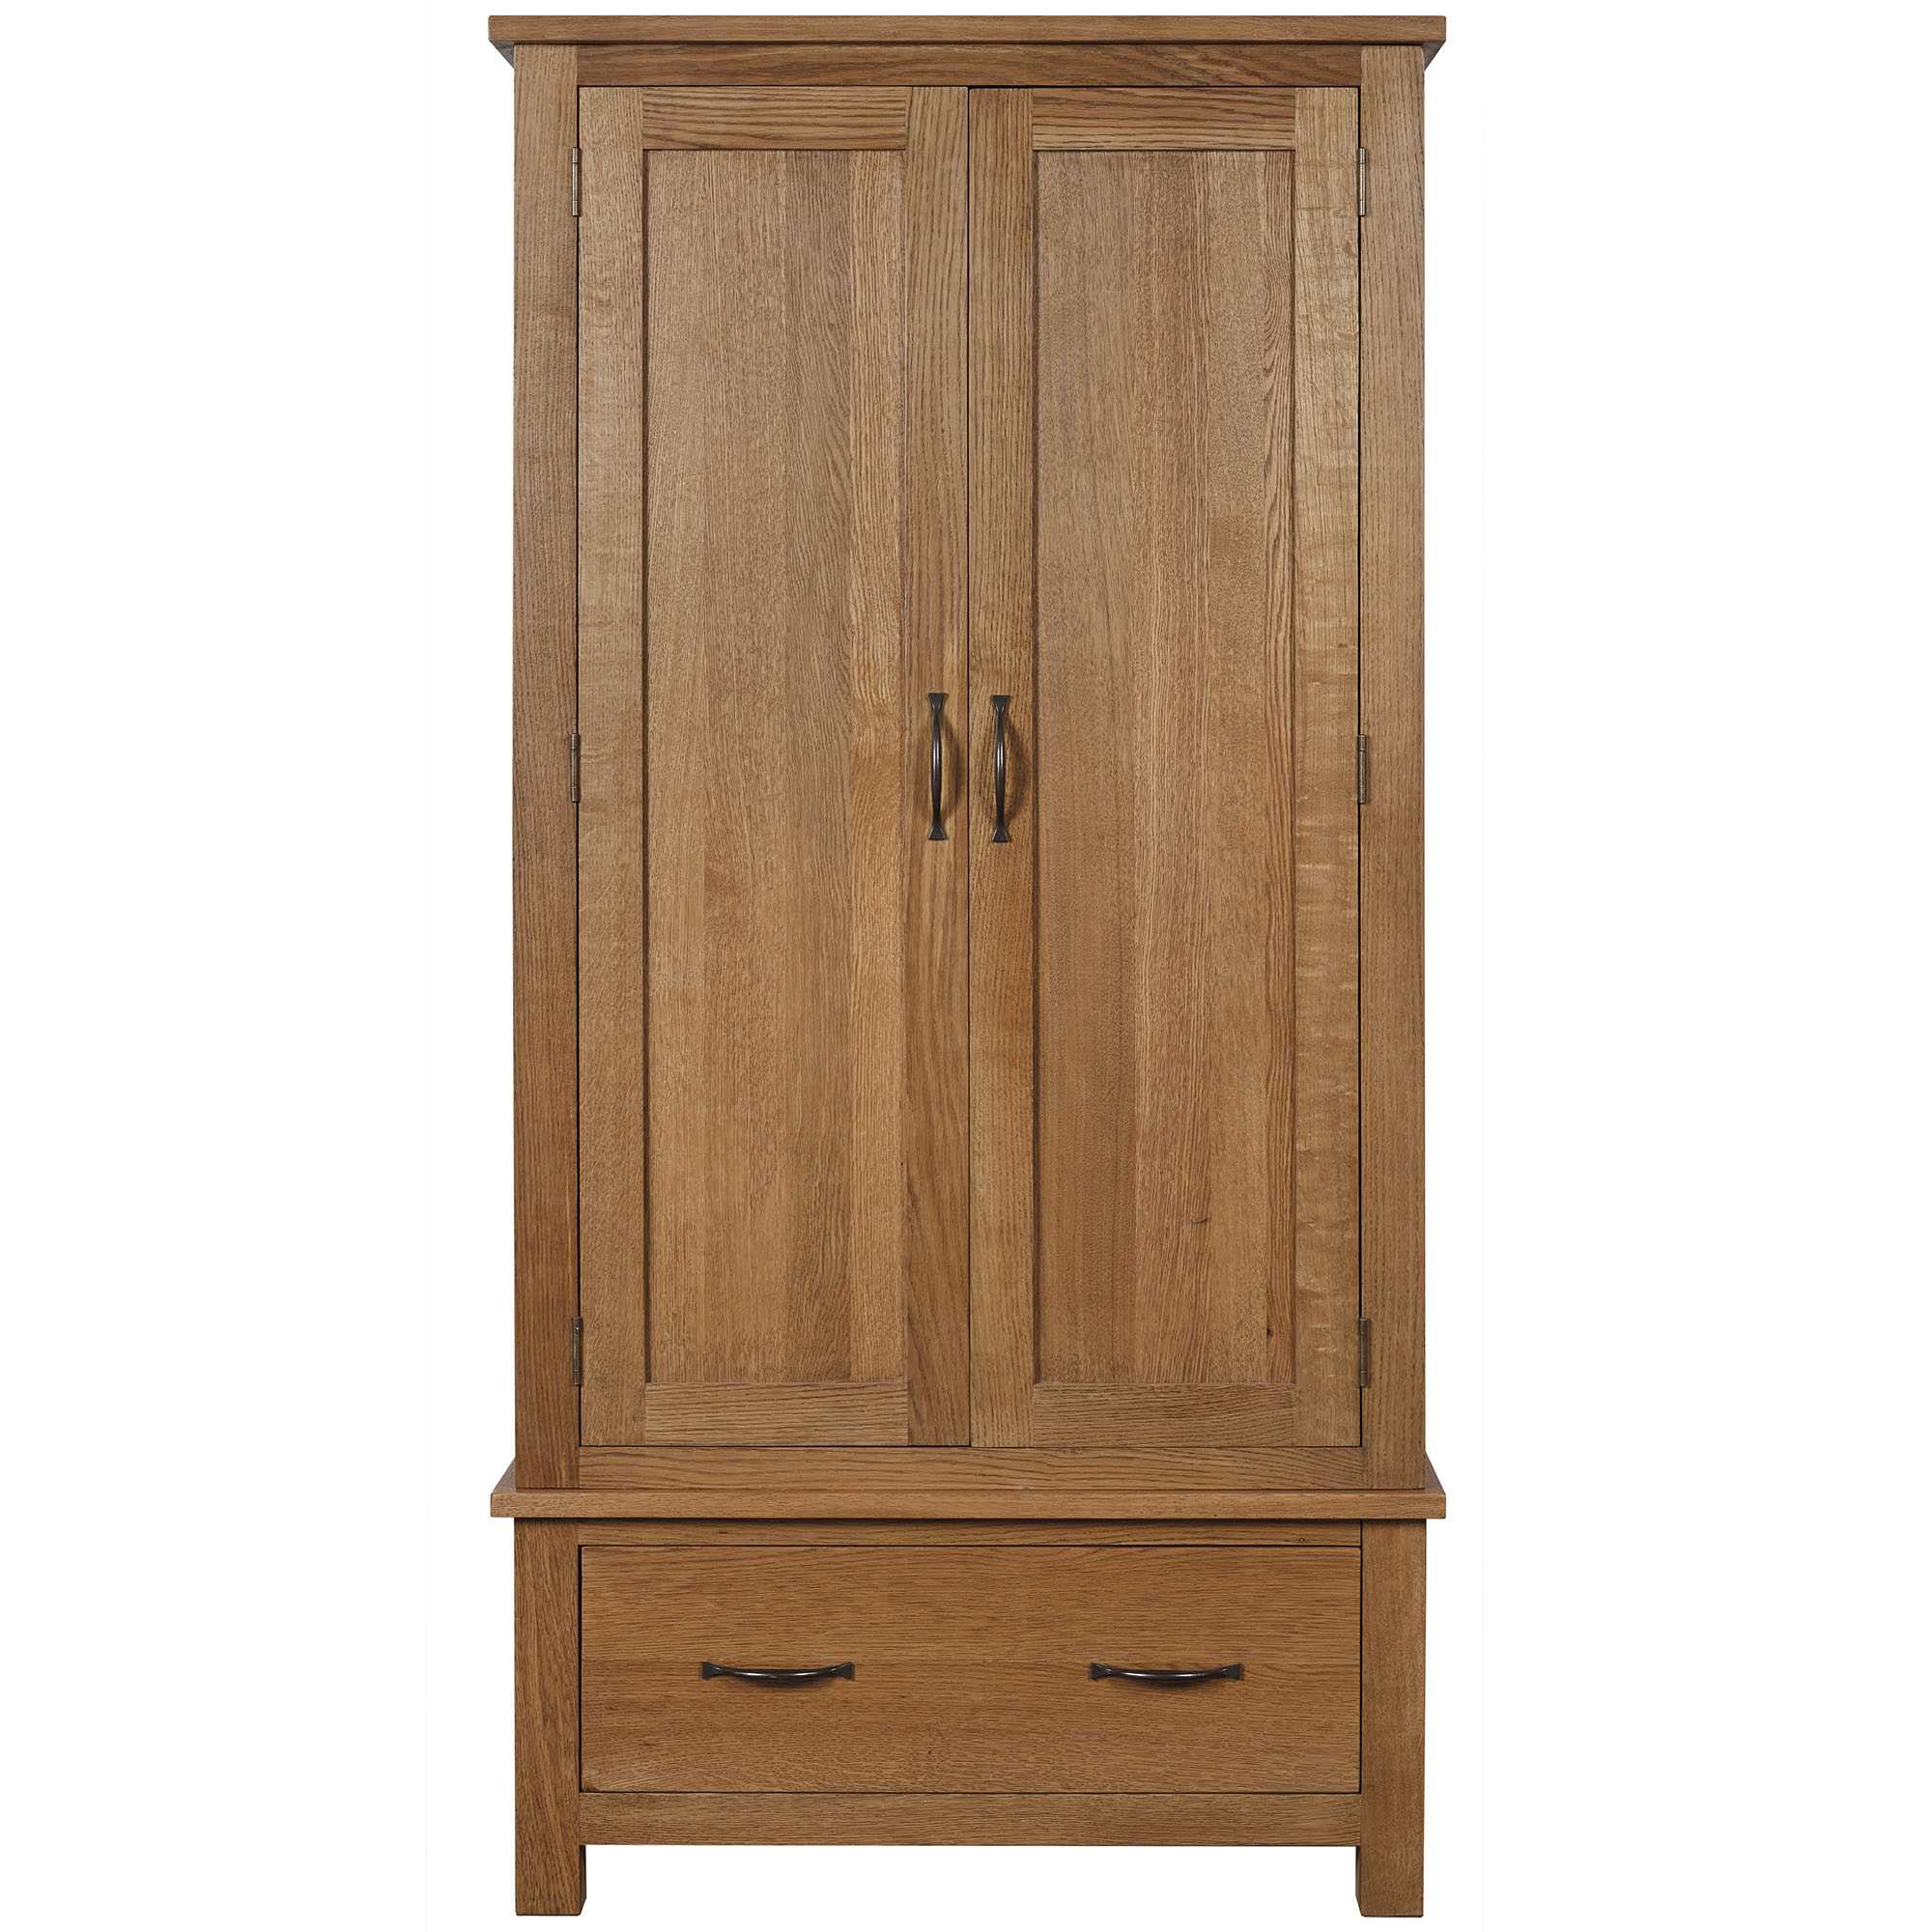 Photo of Sidmouth oak double wardrobe light brown / natural